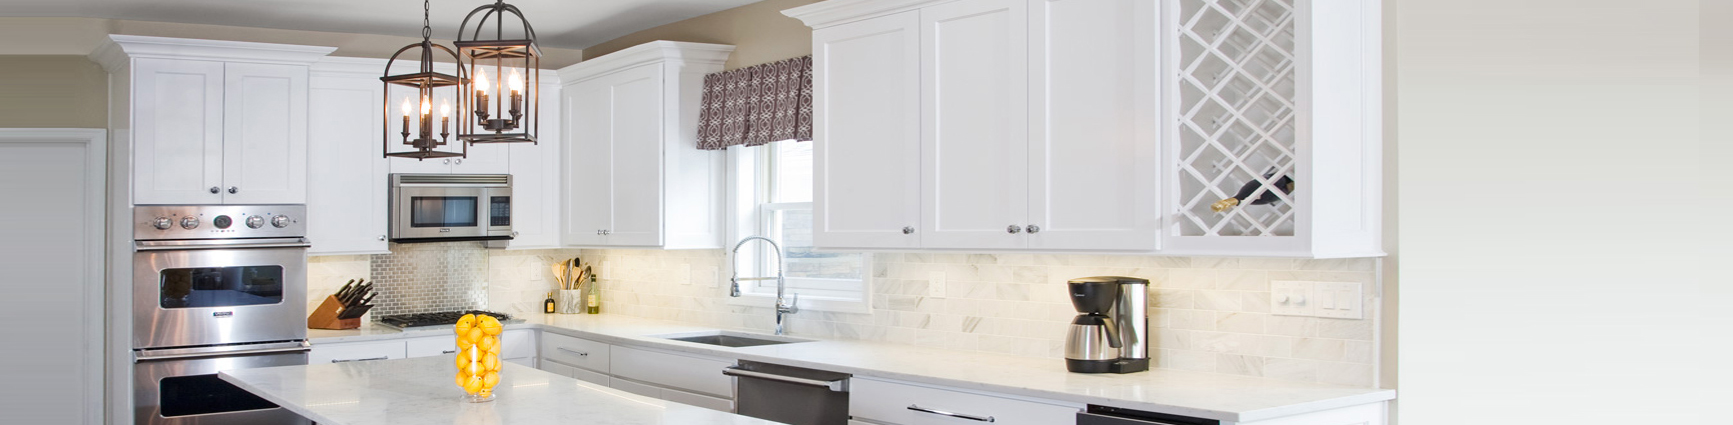 kitchen cabinet reface remodeling naples fl refacing let s face it save up to 60 off the cost of conventional replacement learn more